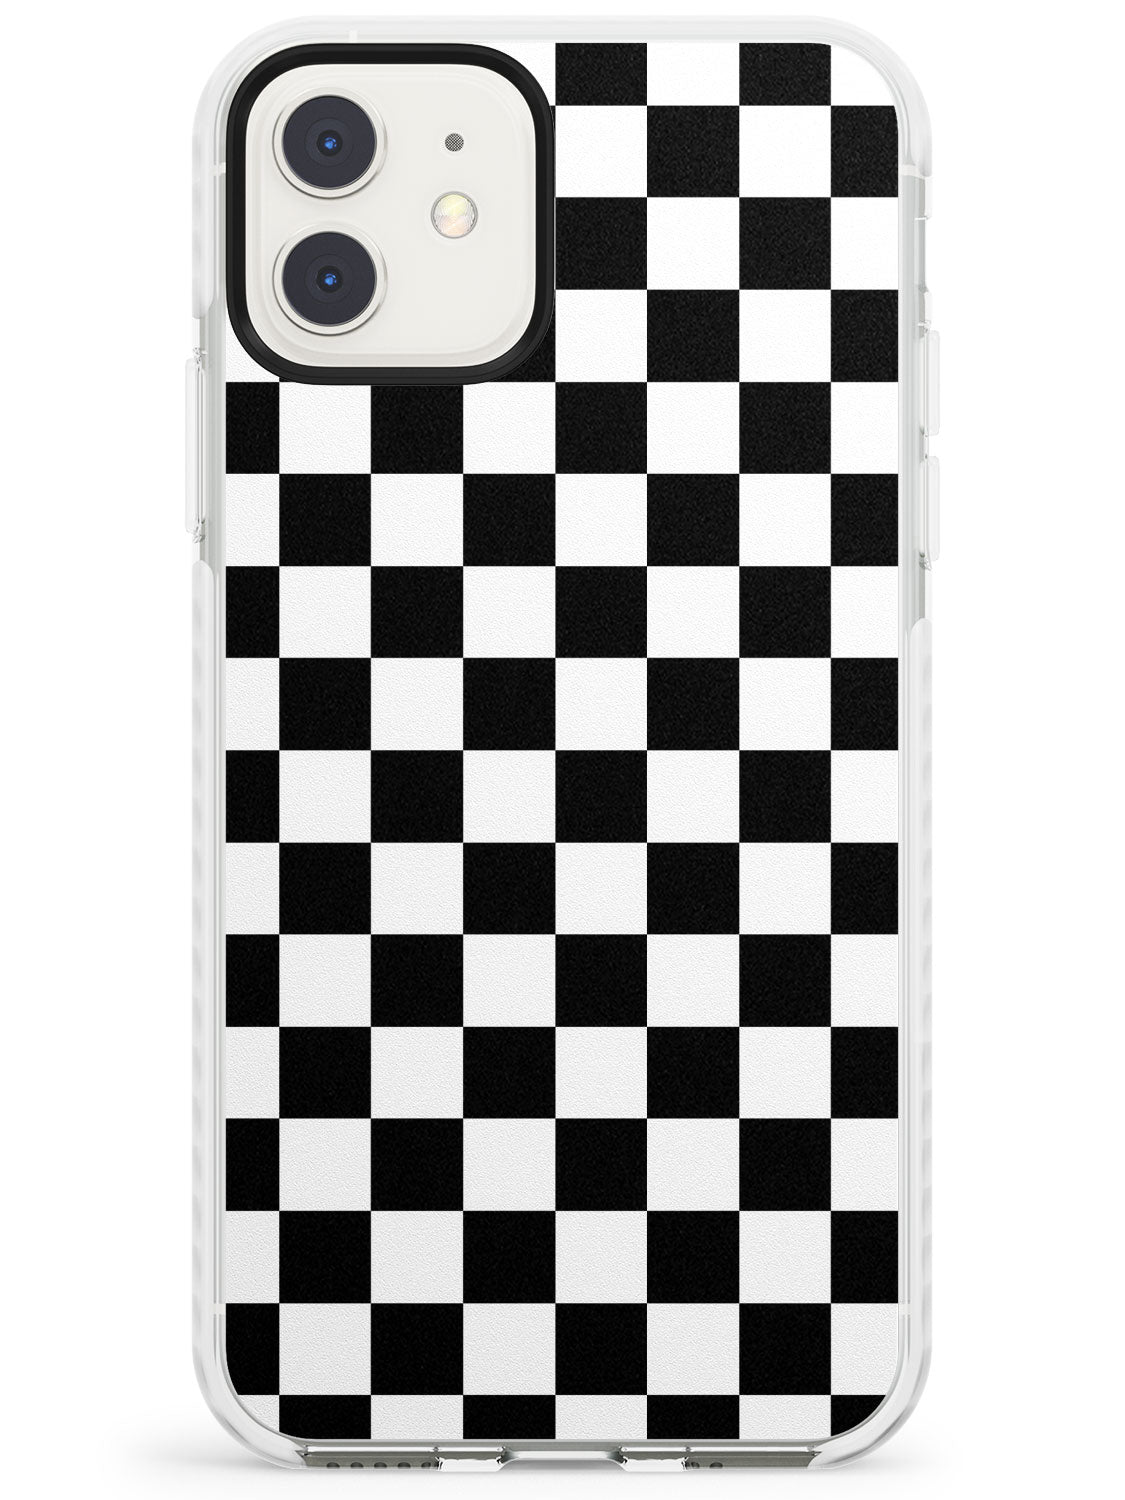 Black Checkered iPhone Case by Case Warehouse ®